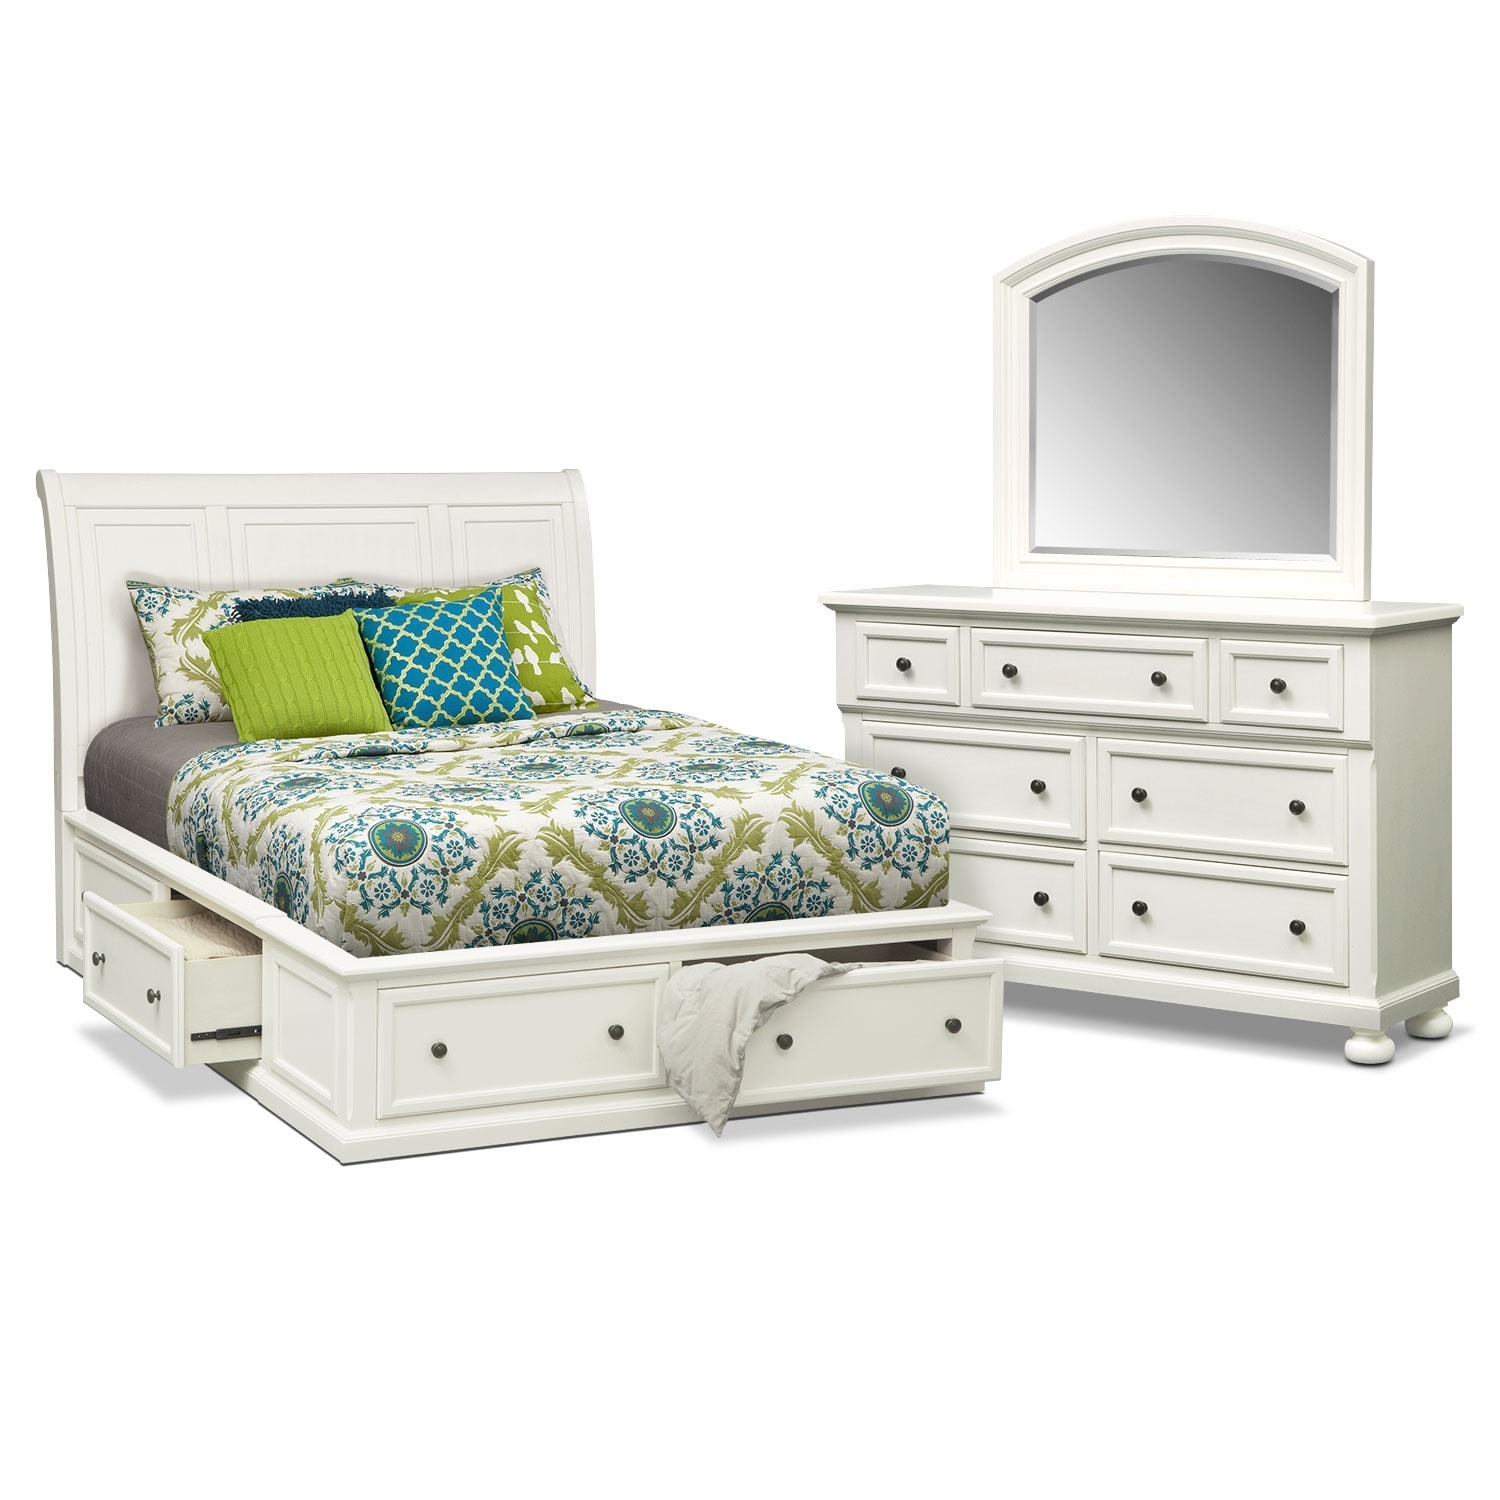 Hanover 5 Piece Queen Storage Bedroom Set White Value